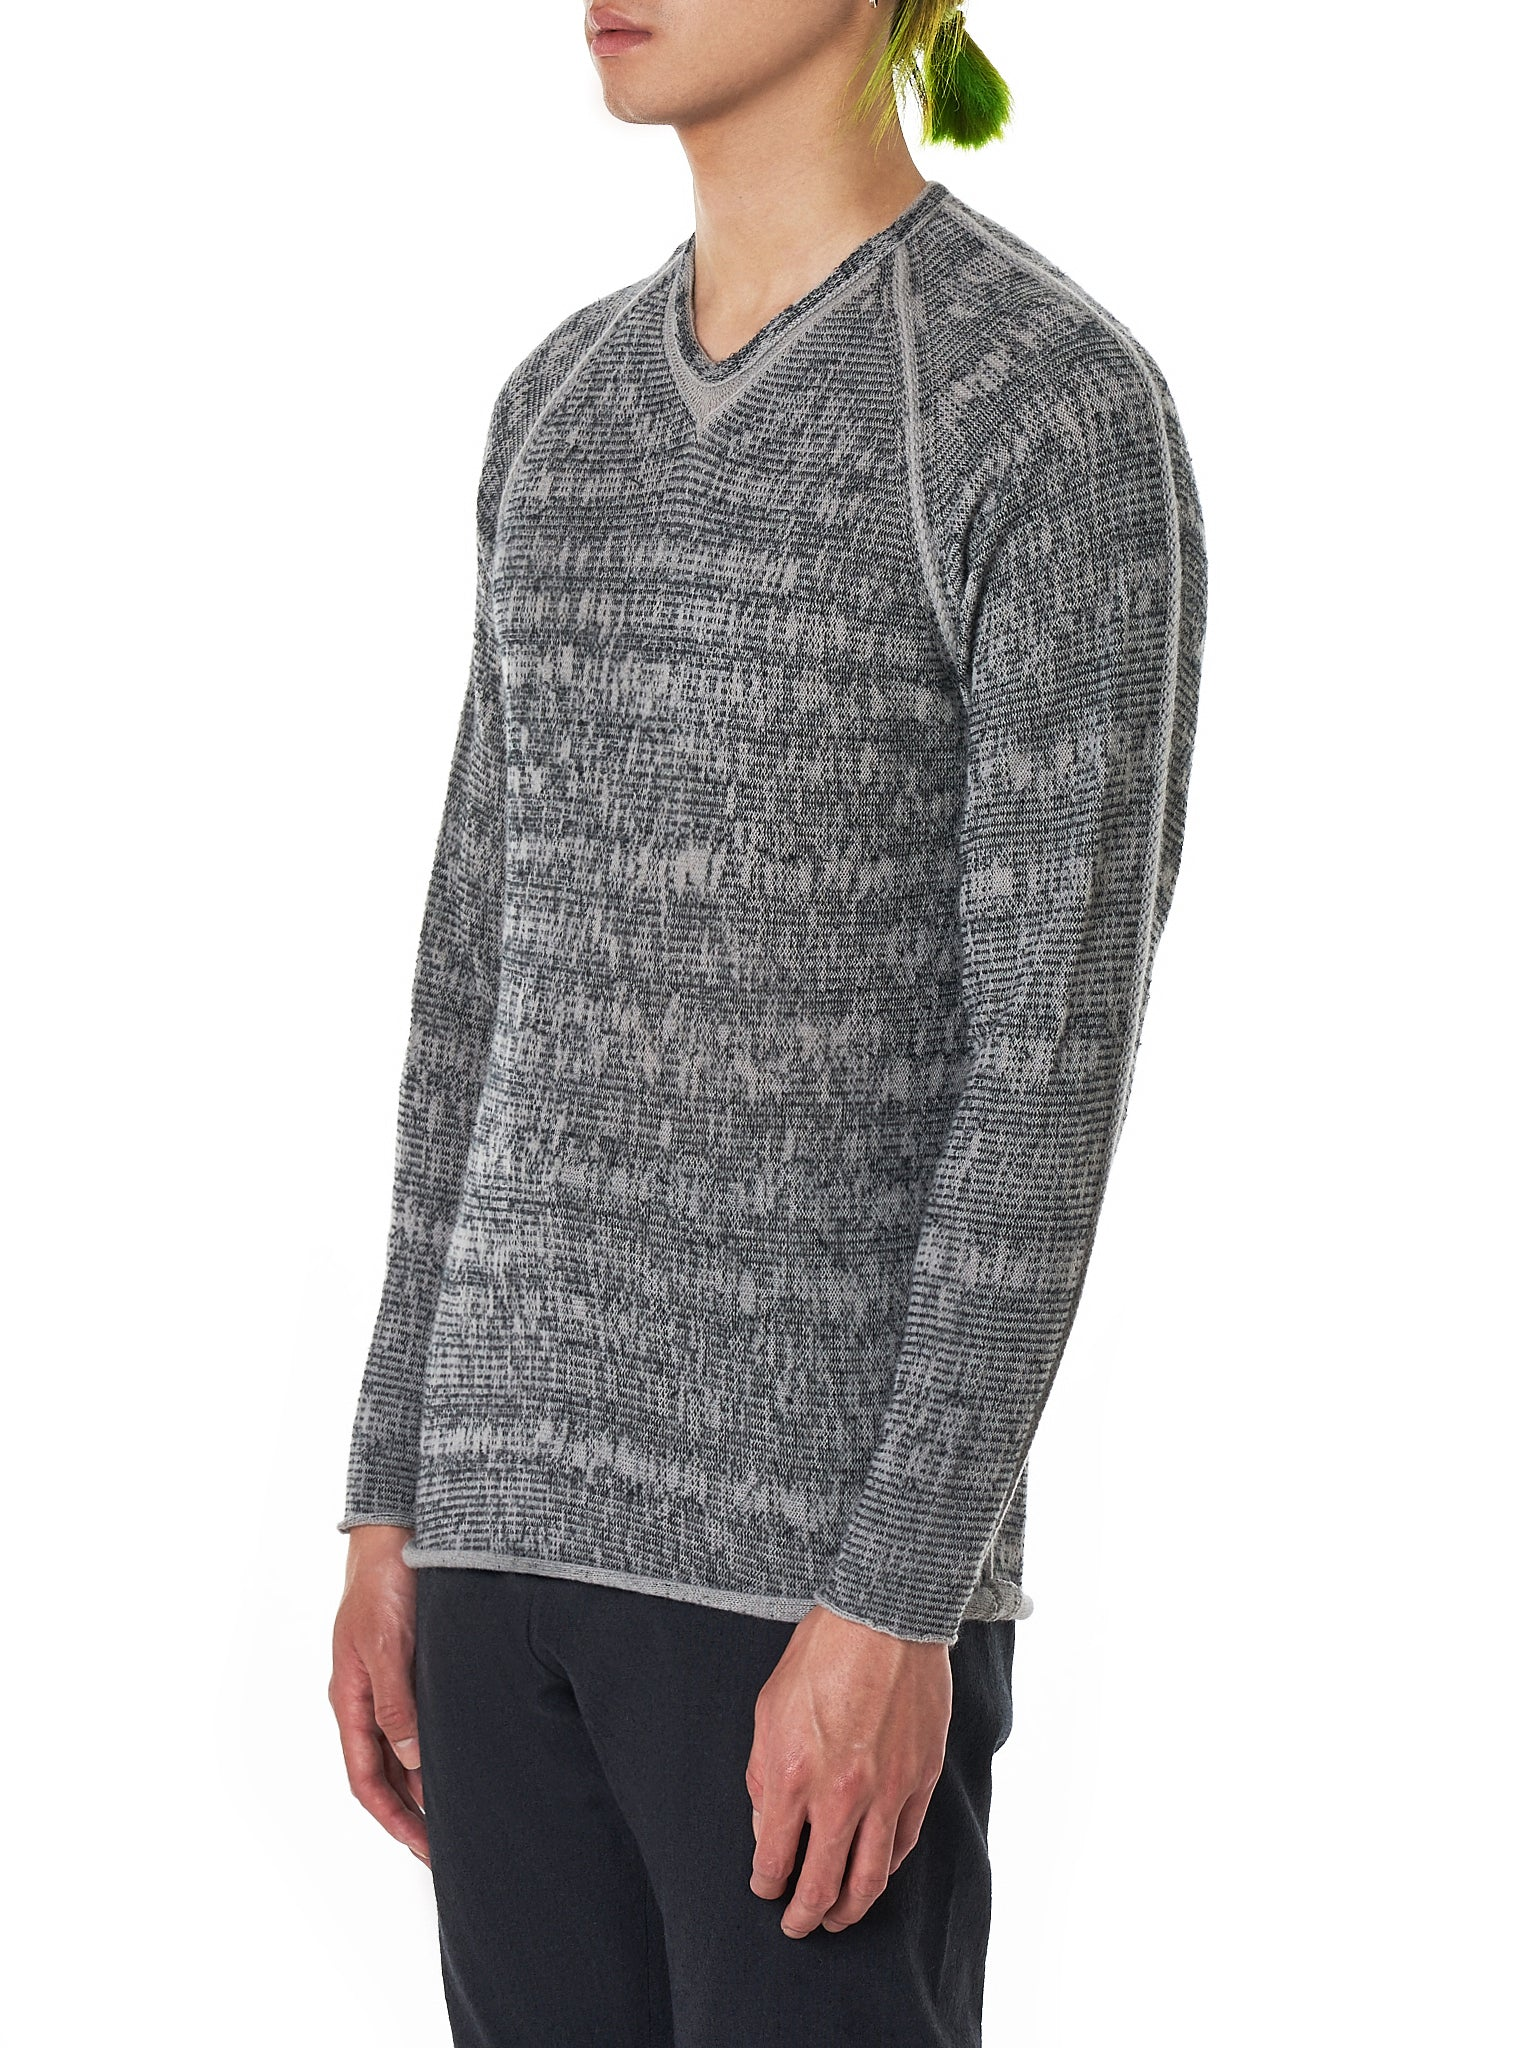 Label Under Construction Sweater - Hlorenzo Side